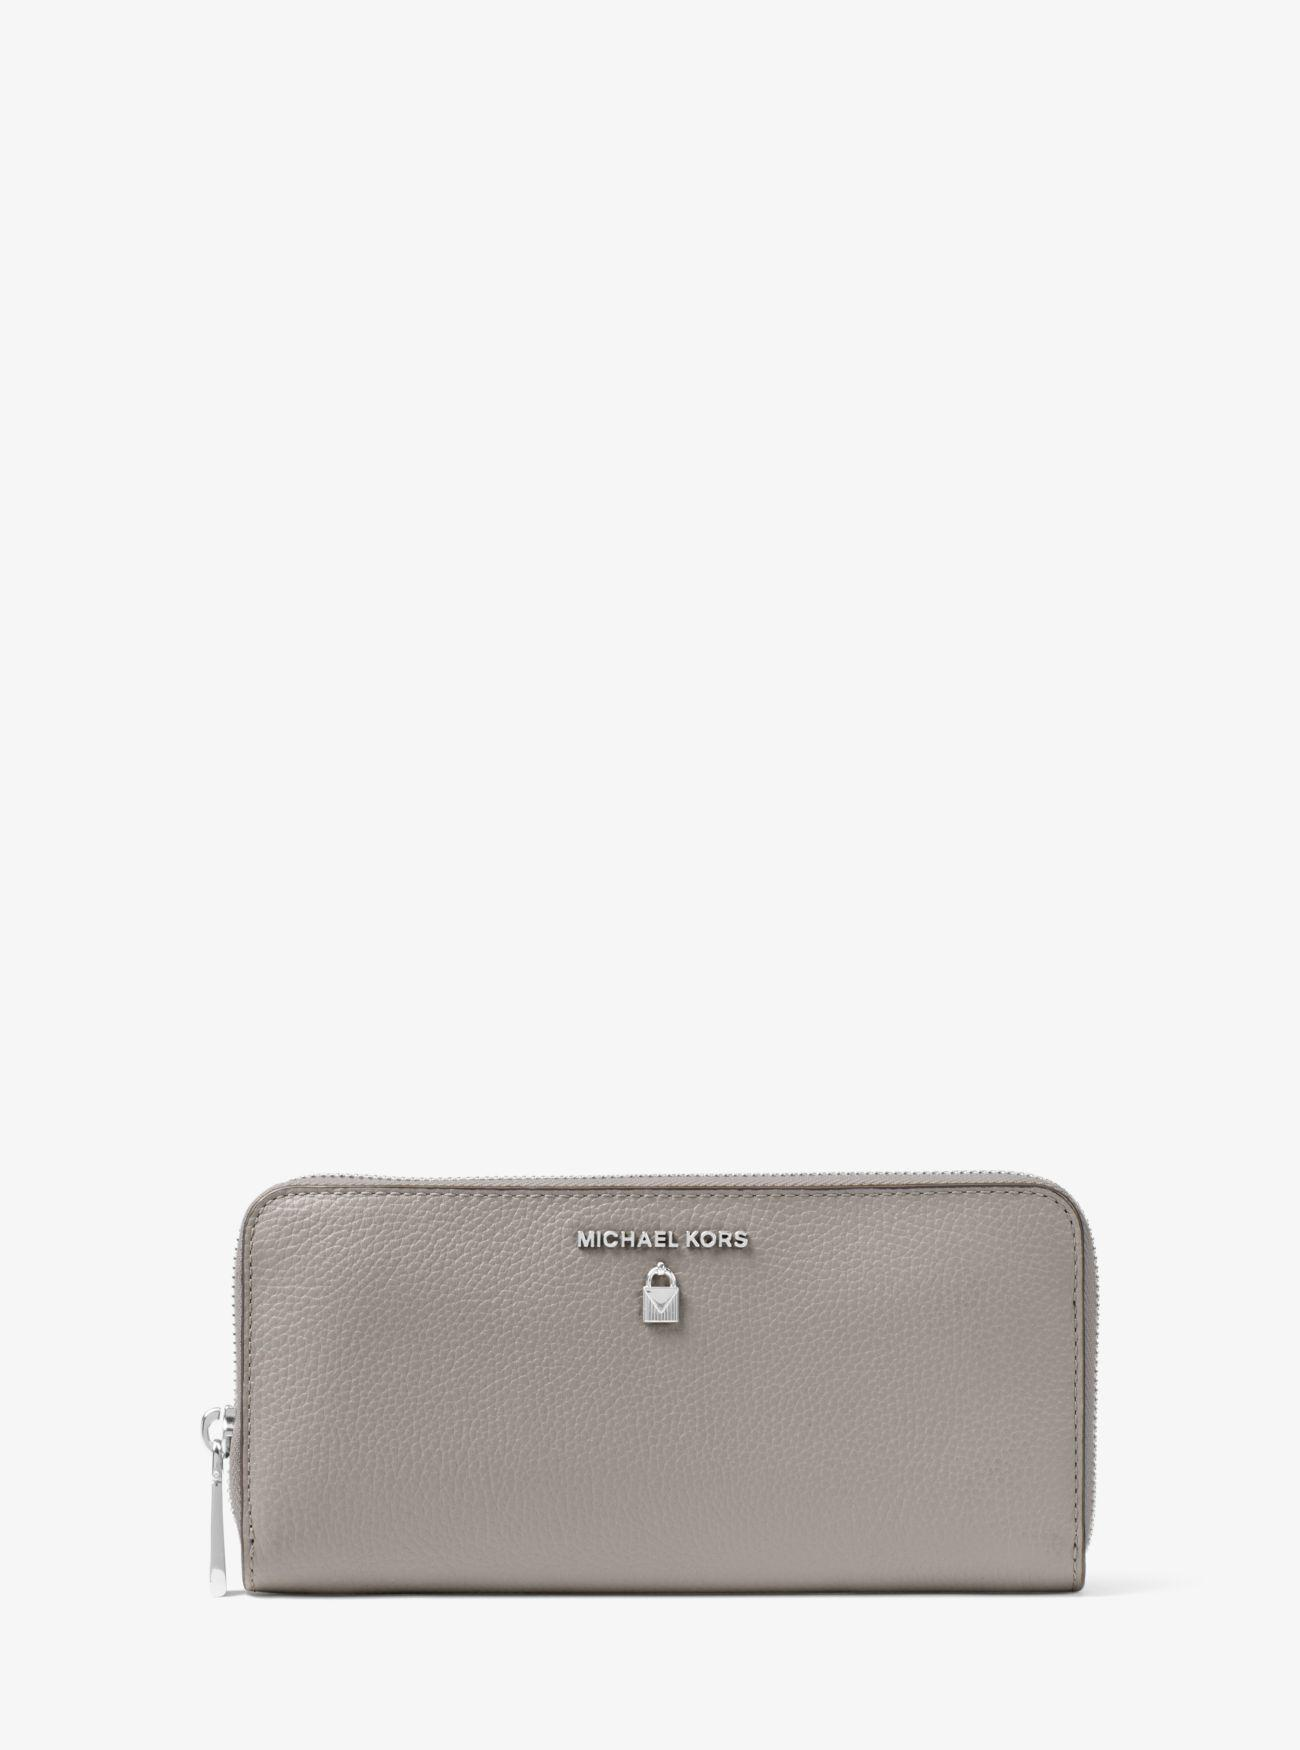 a62232526be463 Michael Kors Sutton Leather Continental Wallet in Gray - Lyst